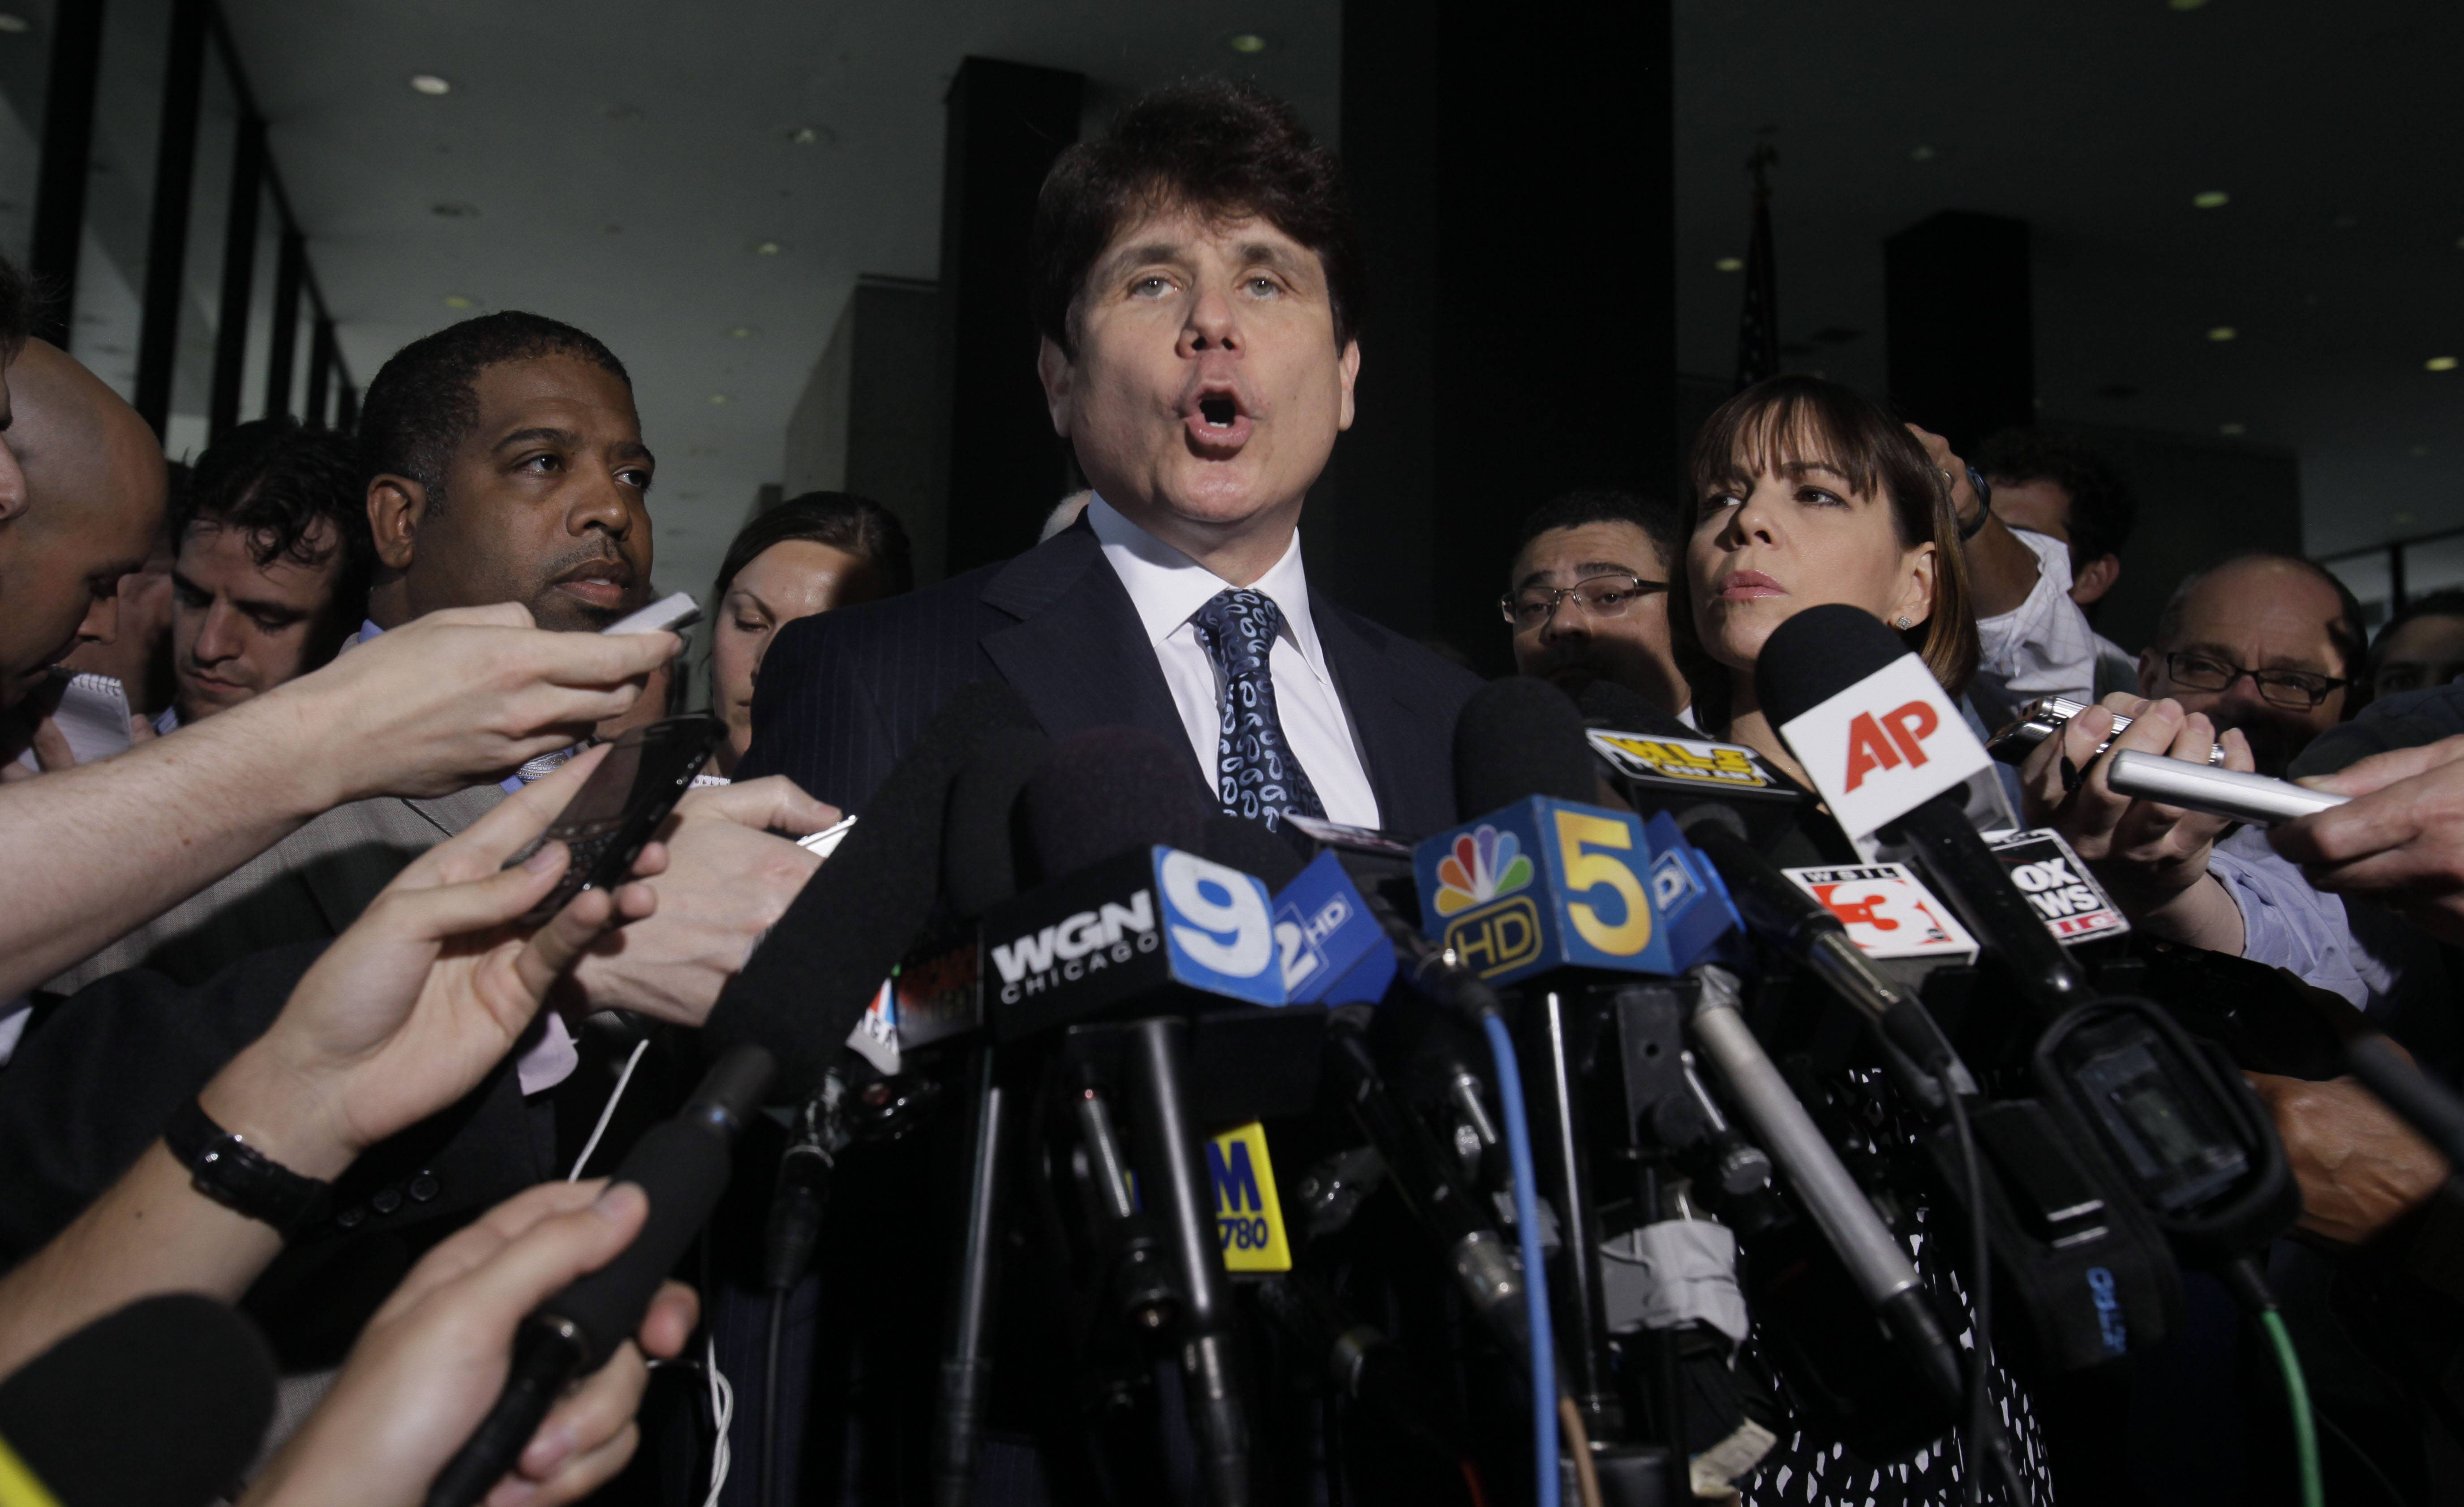 Rod Blagojevich faces 20 charges now instead of 23 at his April retrial.